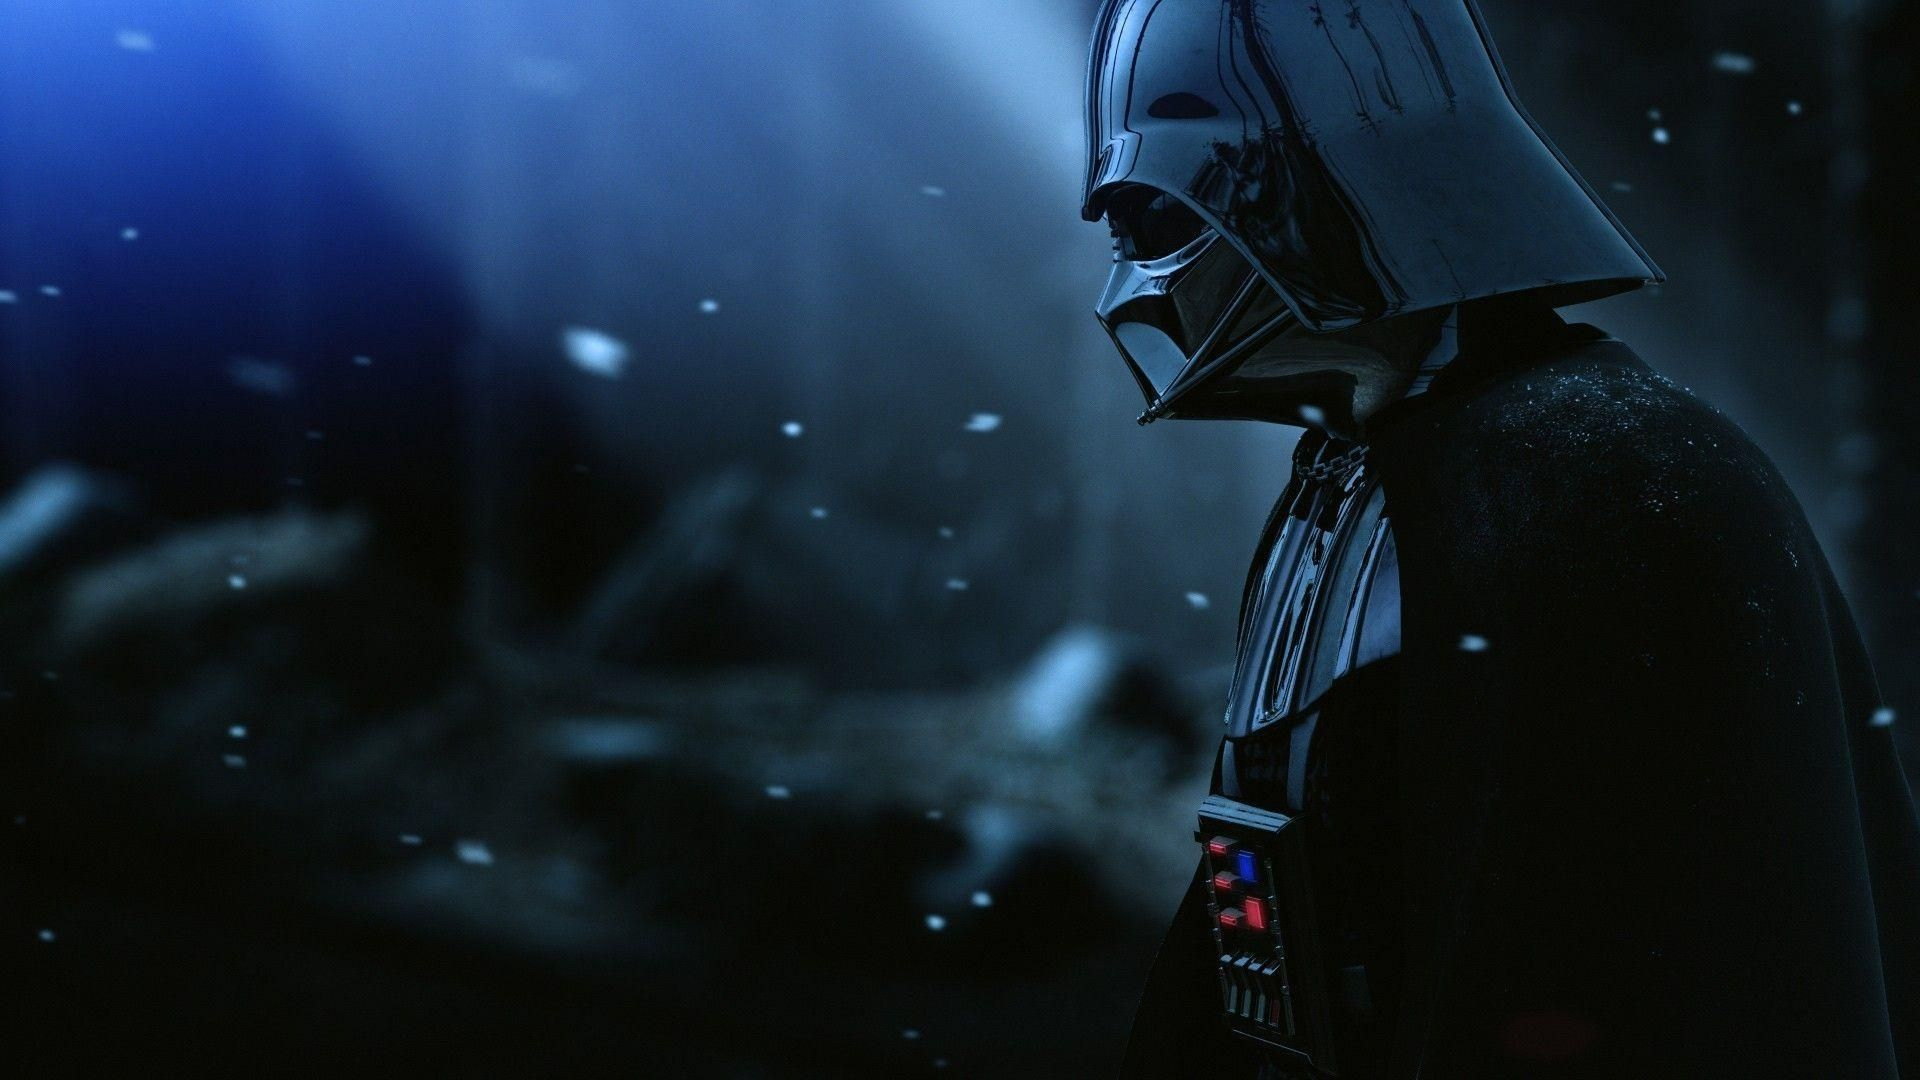 10 Latest Star Wars Wallpaper Full Hd Full Hd 1080p For Pc Desktop Star Wars Background Darth Vader Wallpaper Star Wars Illustration